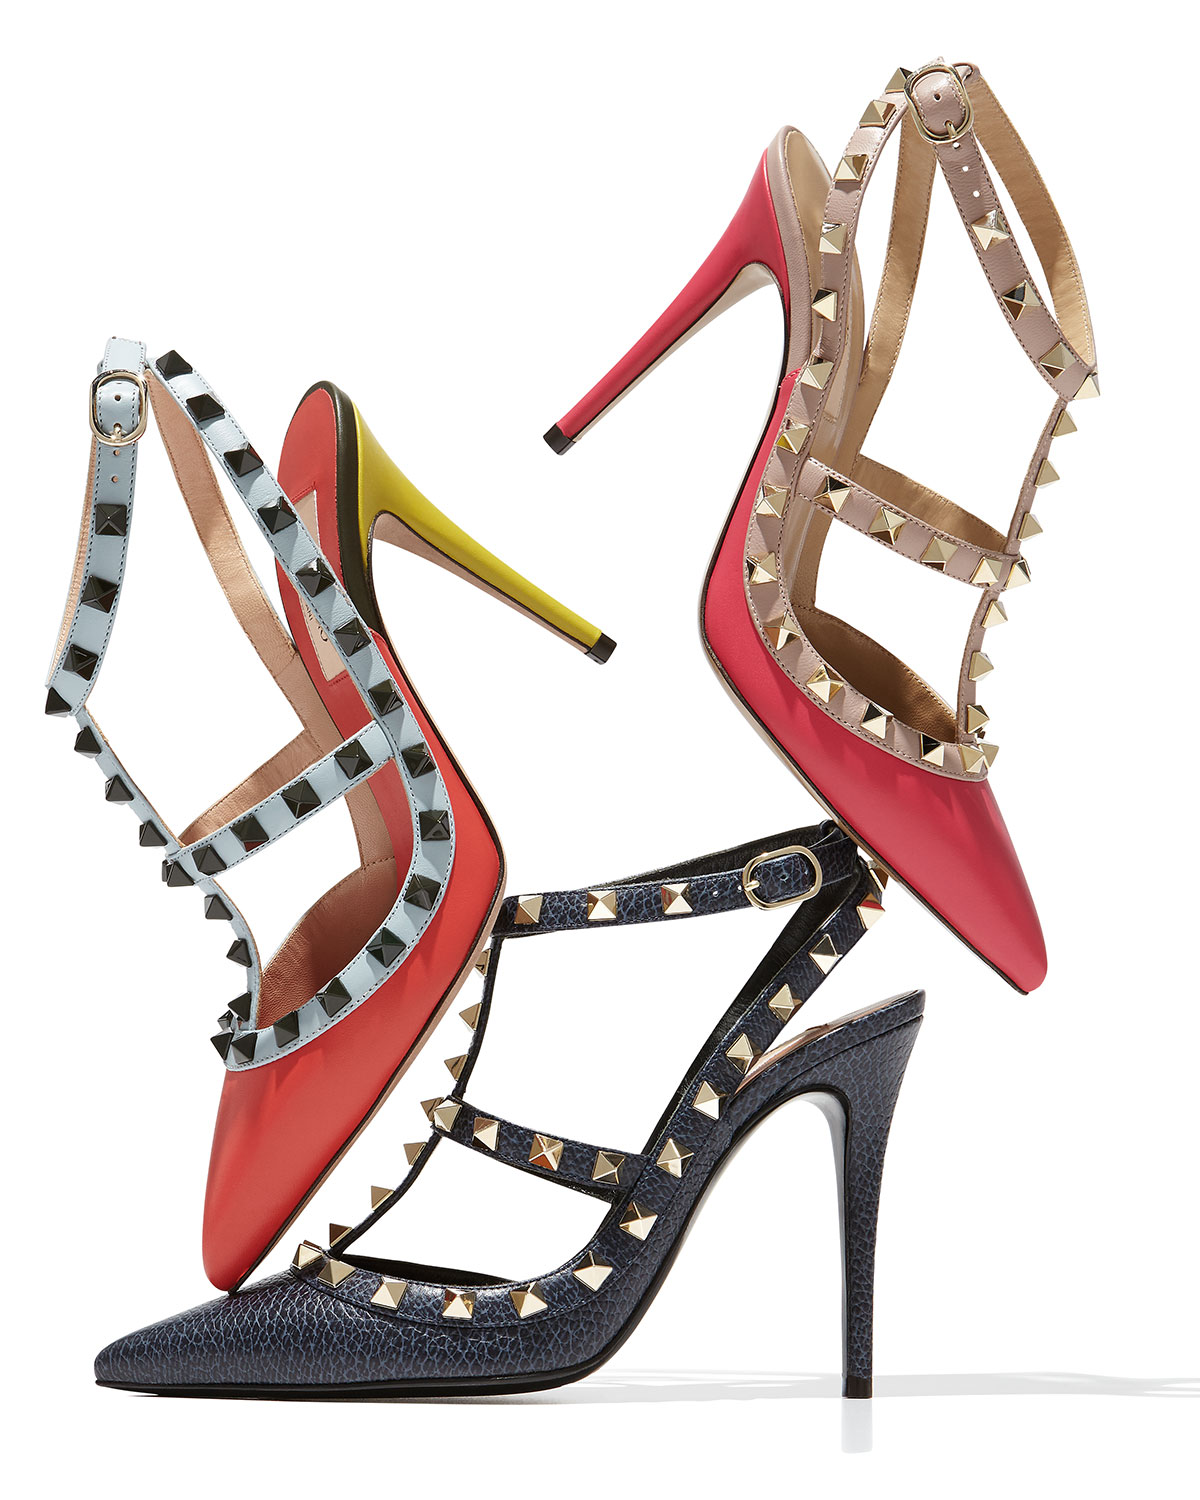 5b8649ec0f57 Christian Louboutin Blue Heels Dsw Christian Christmas Images ...